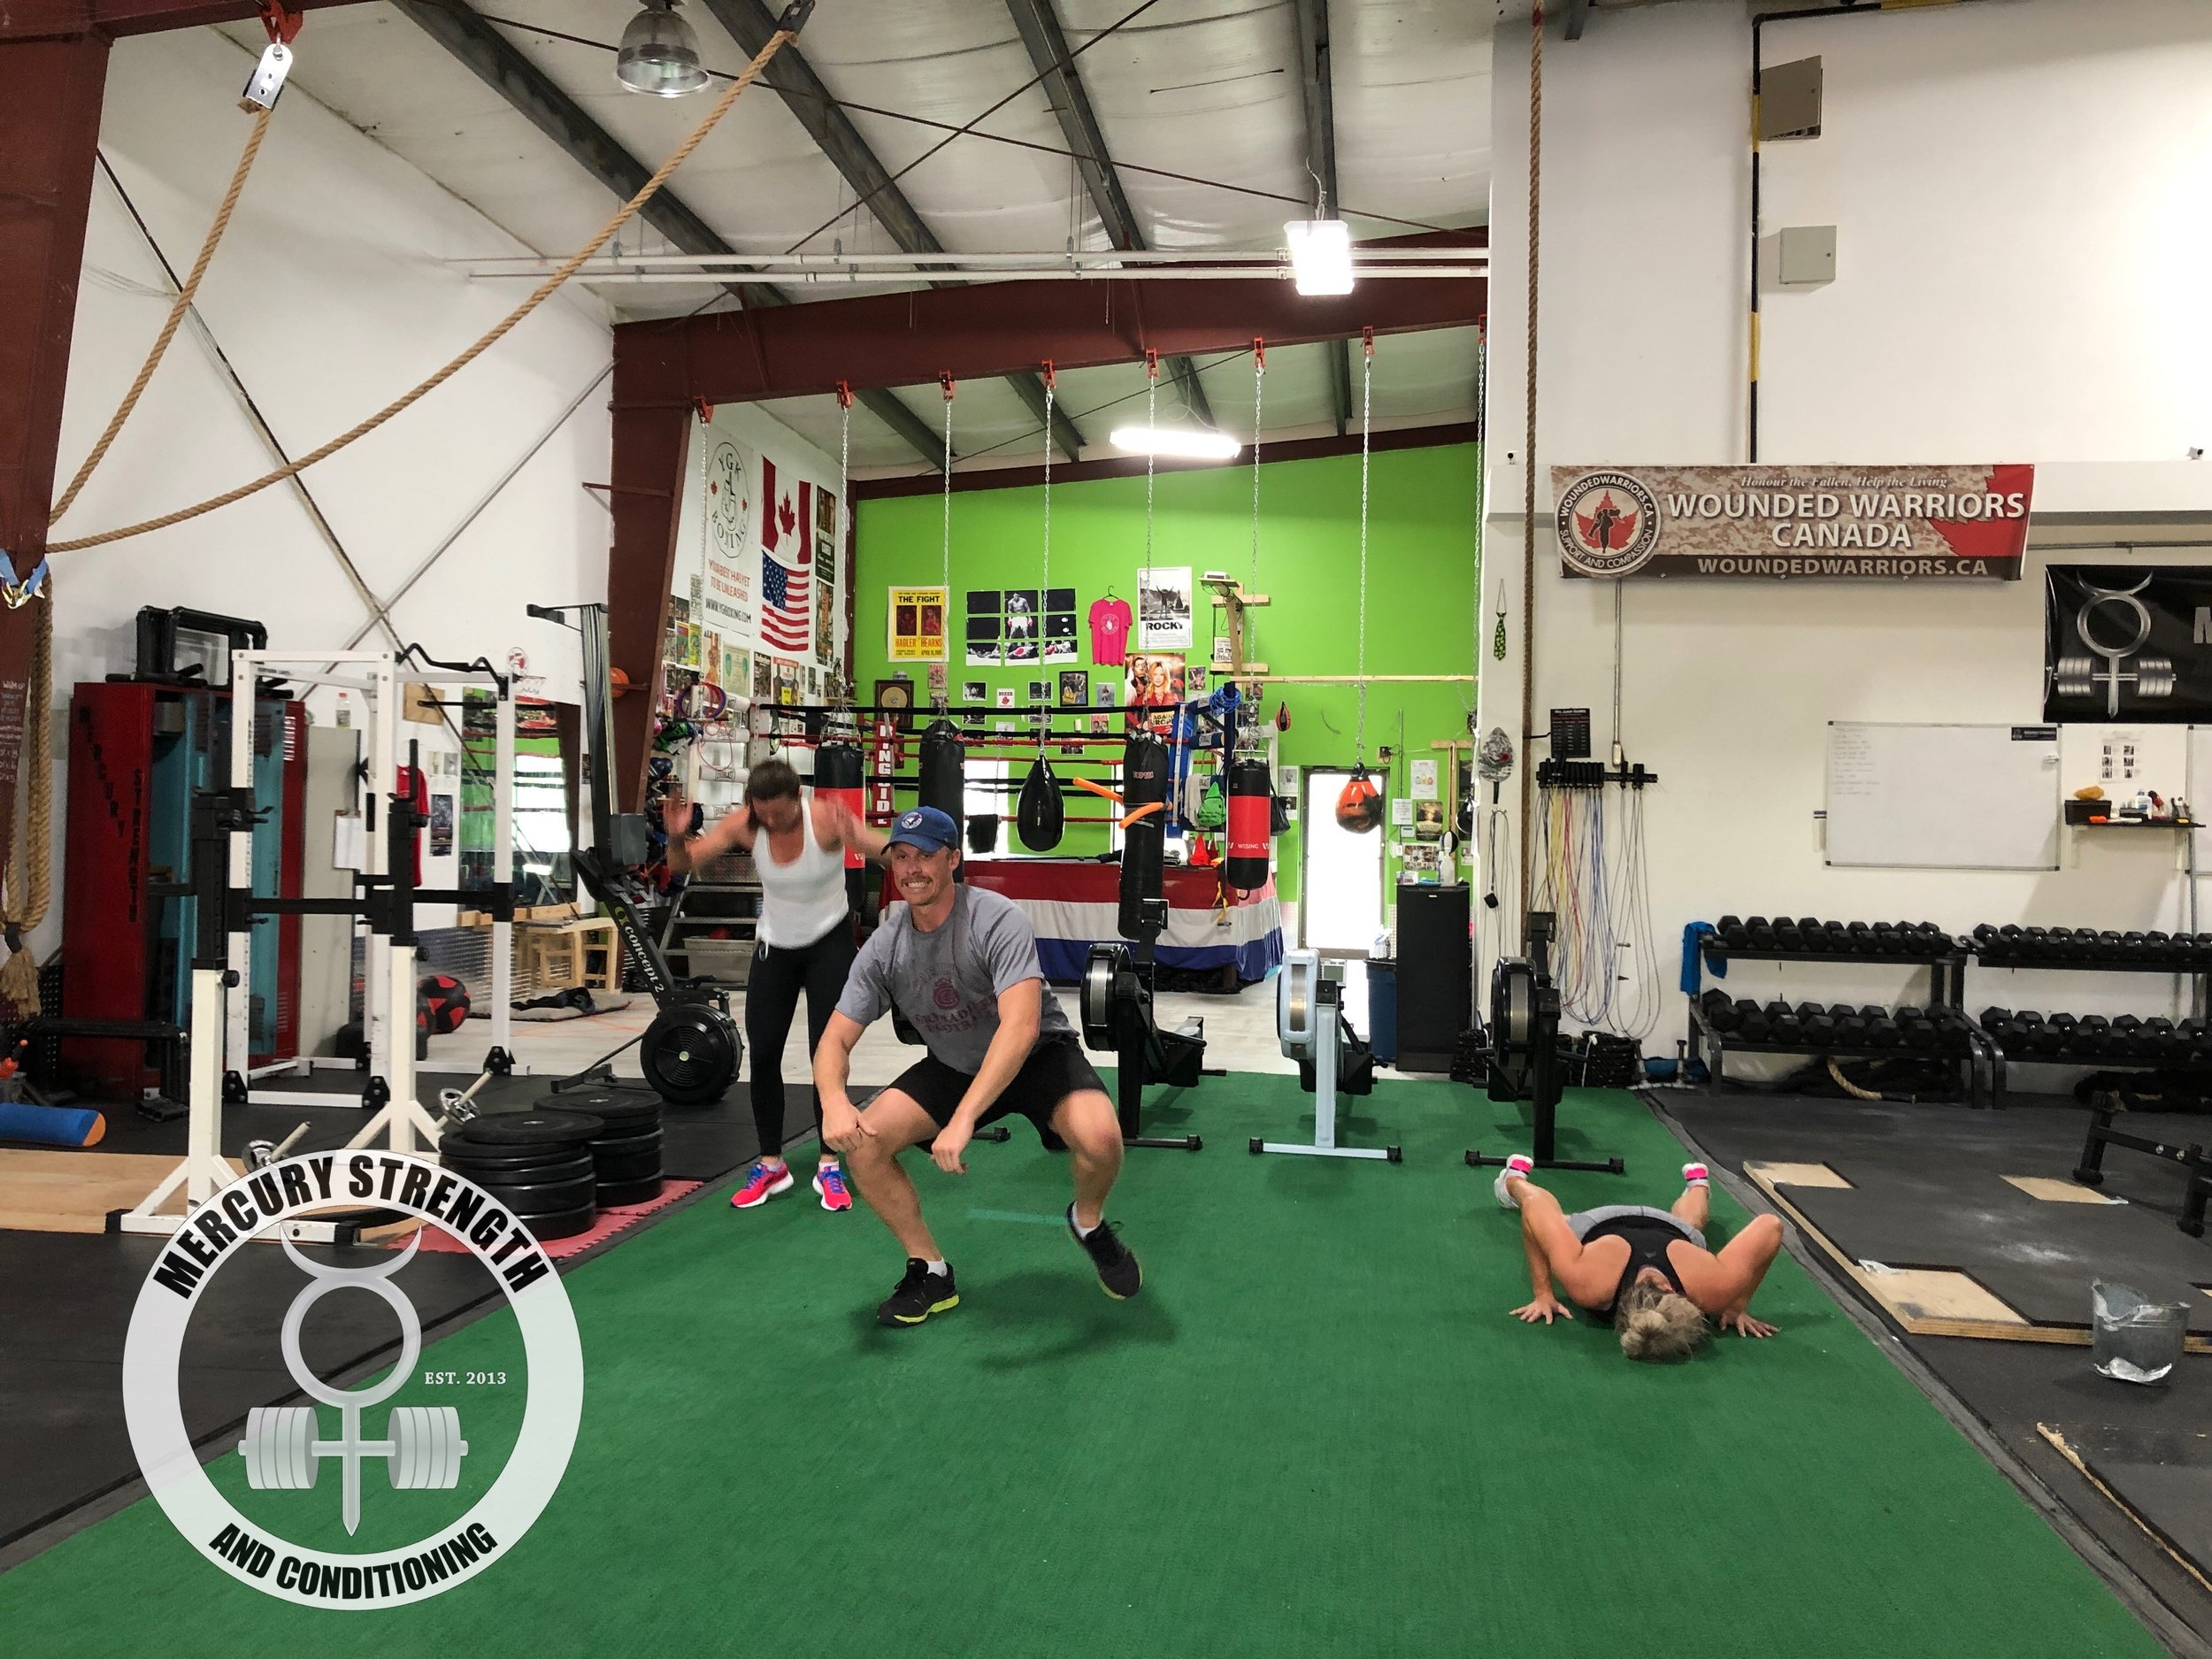 Gym-powerlifting-Olympic lifting-fitness-personal training-training-bootcamp-crossfit-kingston-gym-kingston gym-physique-body building-nutrition-kids-mercury-strength-conditioning-athlete-Duck Walk - Burpee.JPG